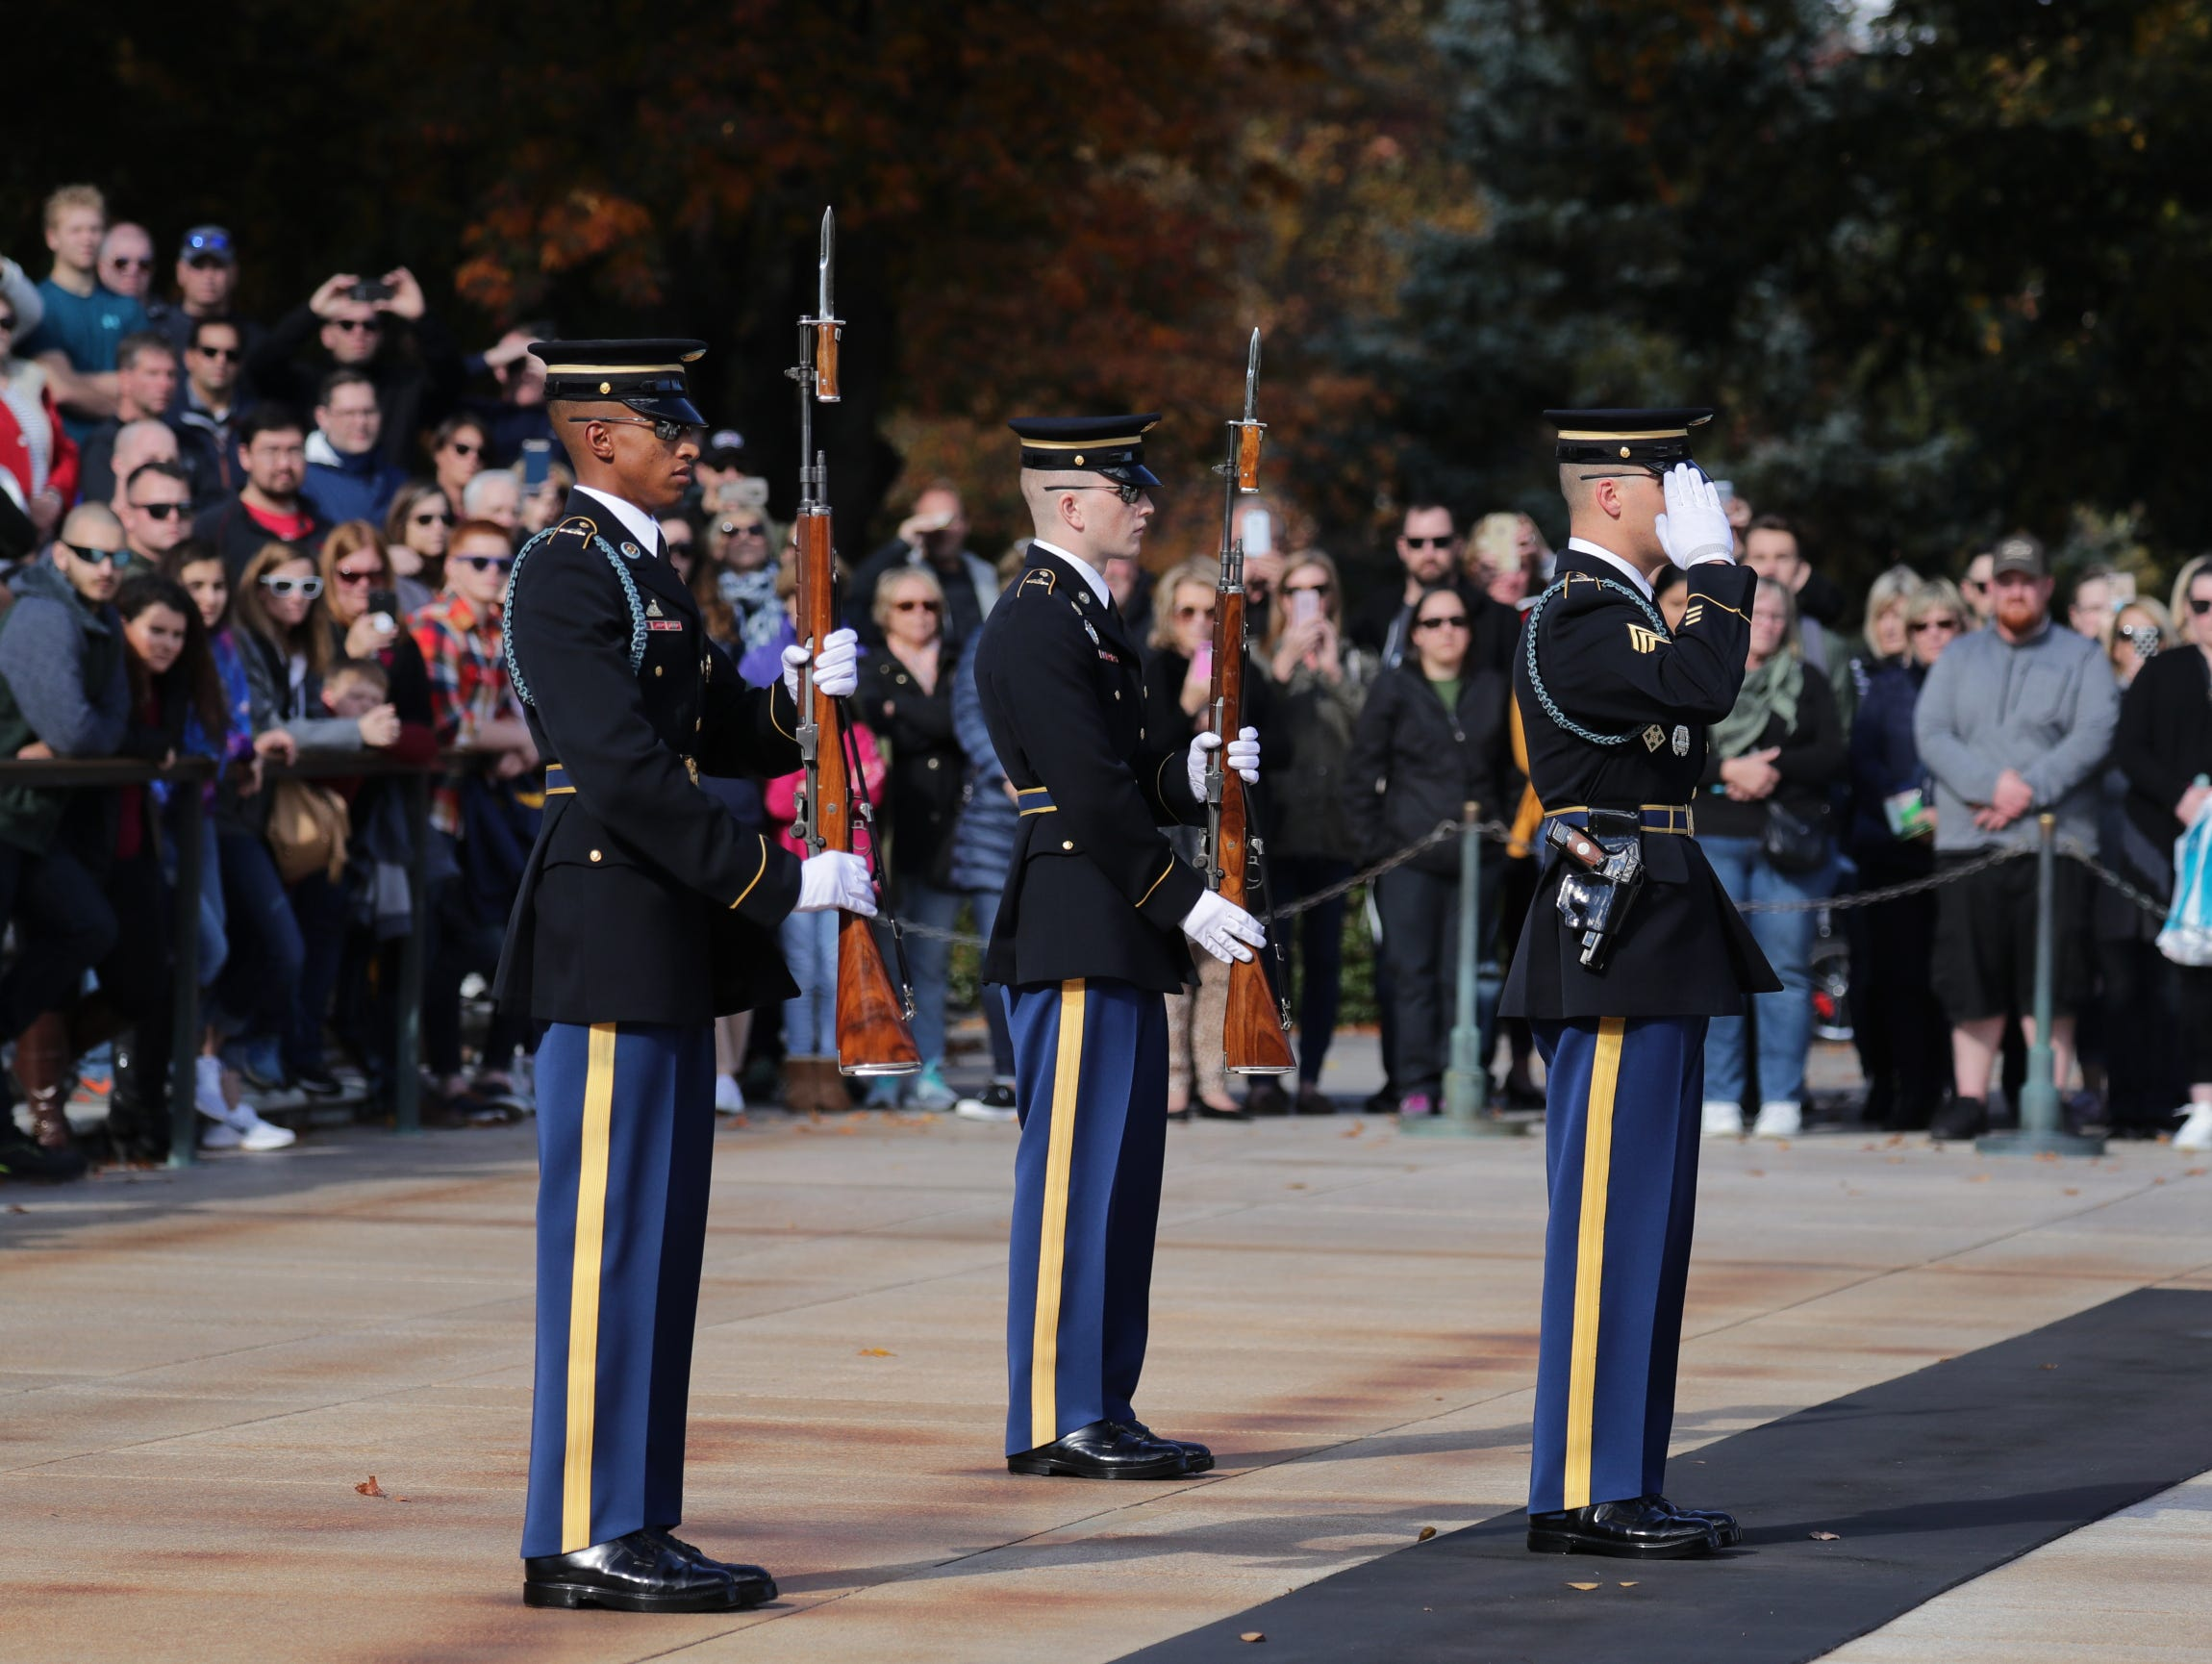 The veterans got to see the changing of the guard at Arlington Cemetery.